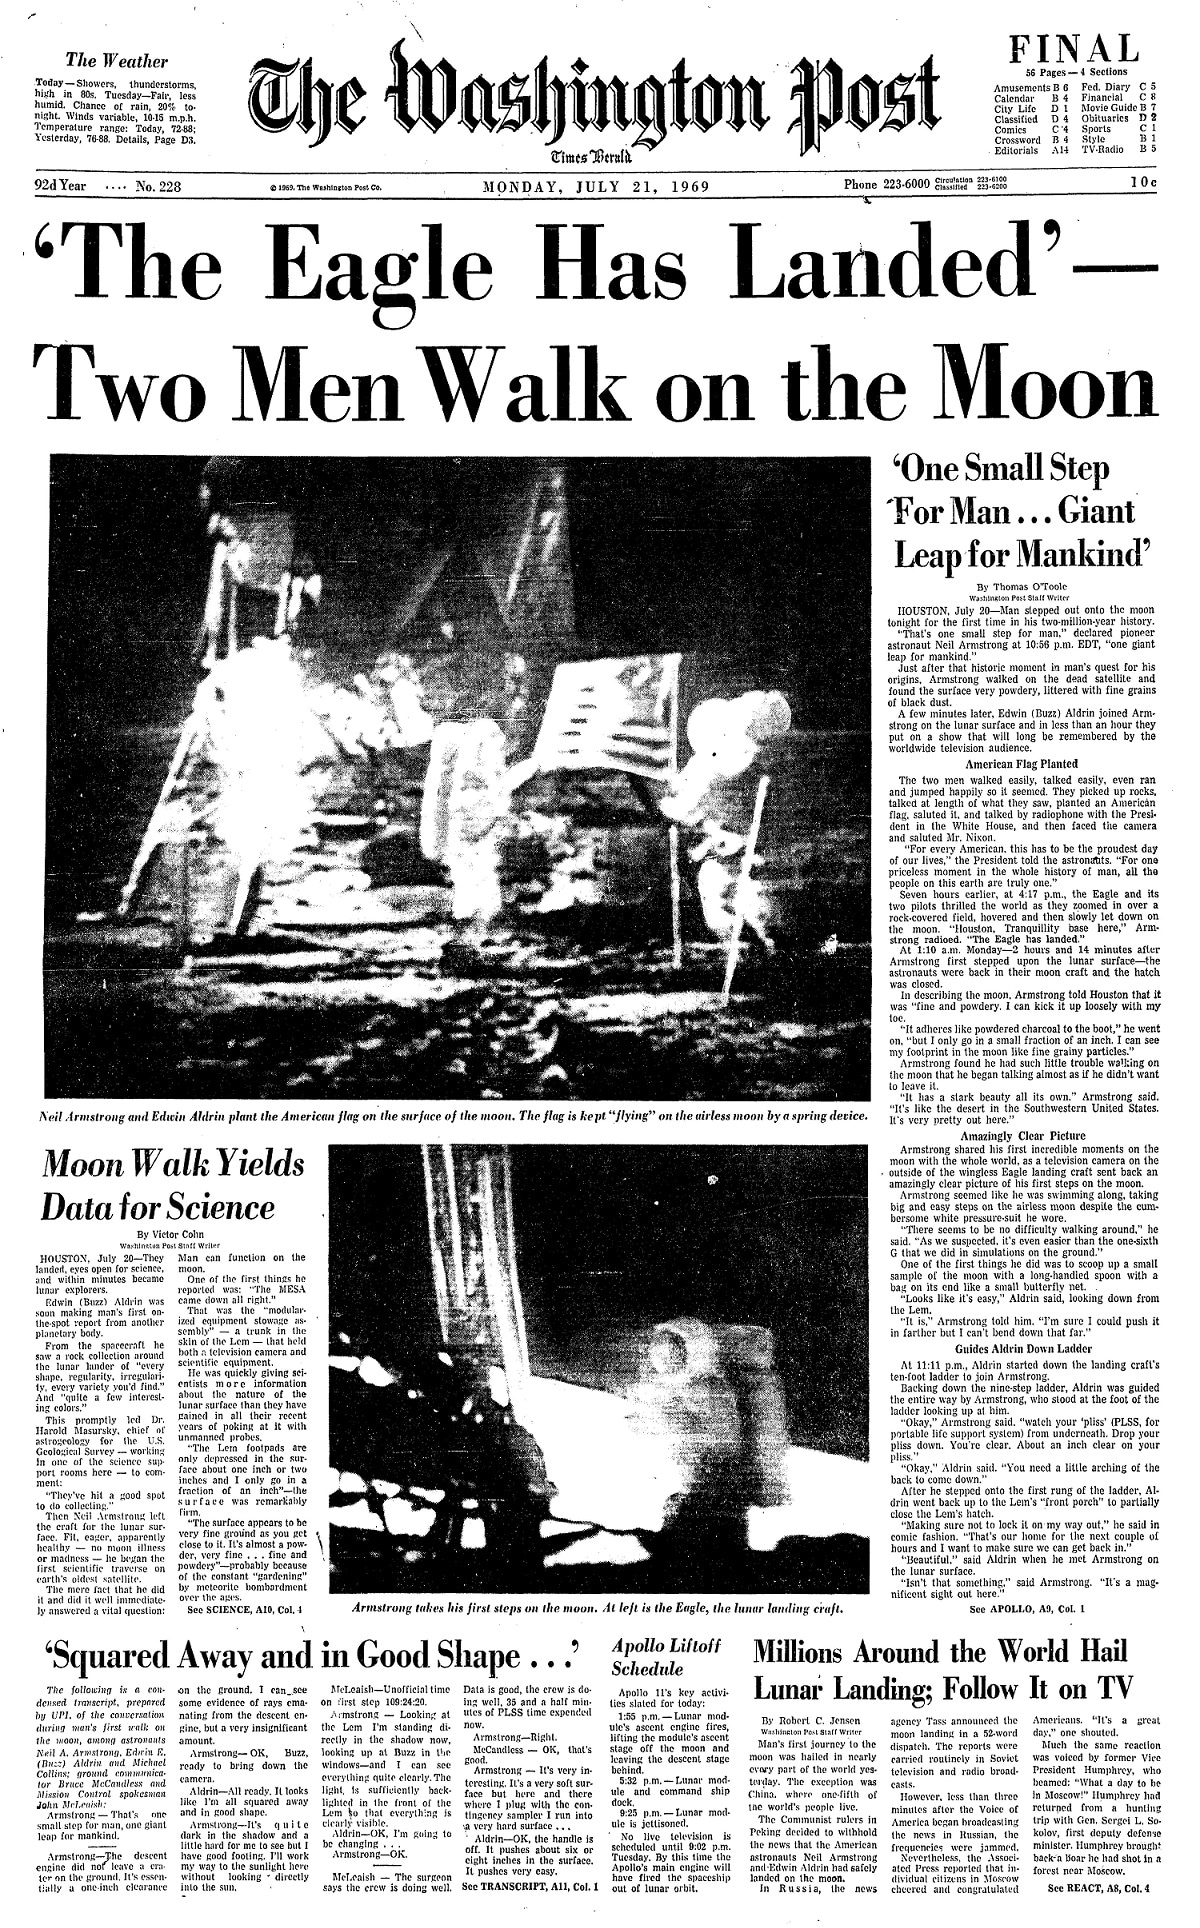 The Eagle Has Landed How The Post Covered The Apollo 11 Landing